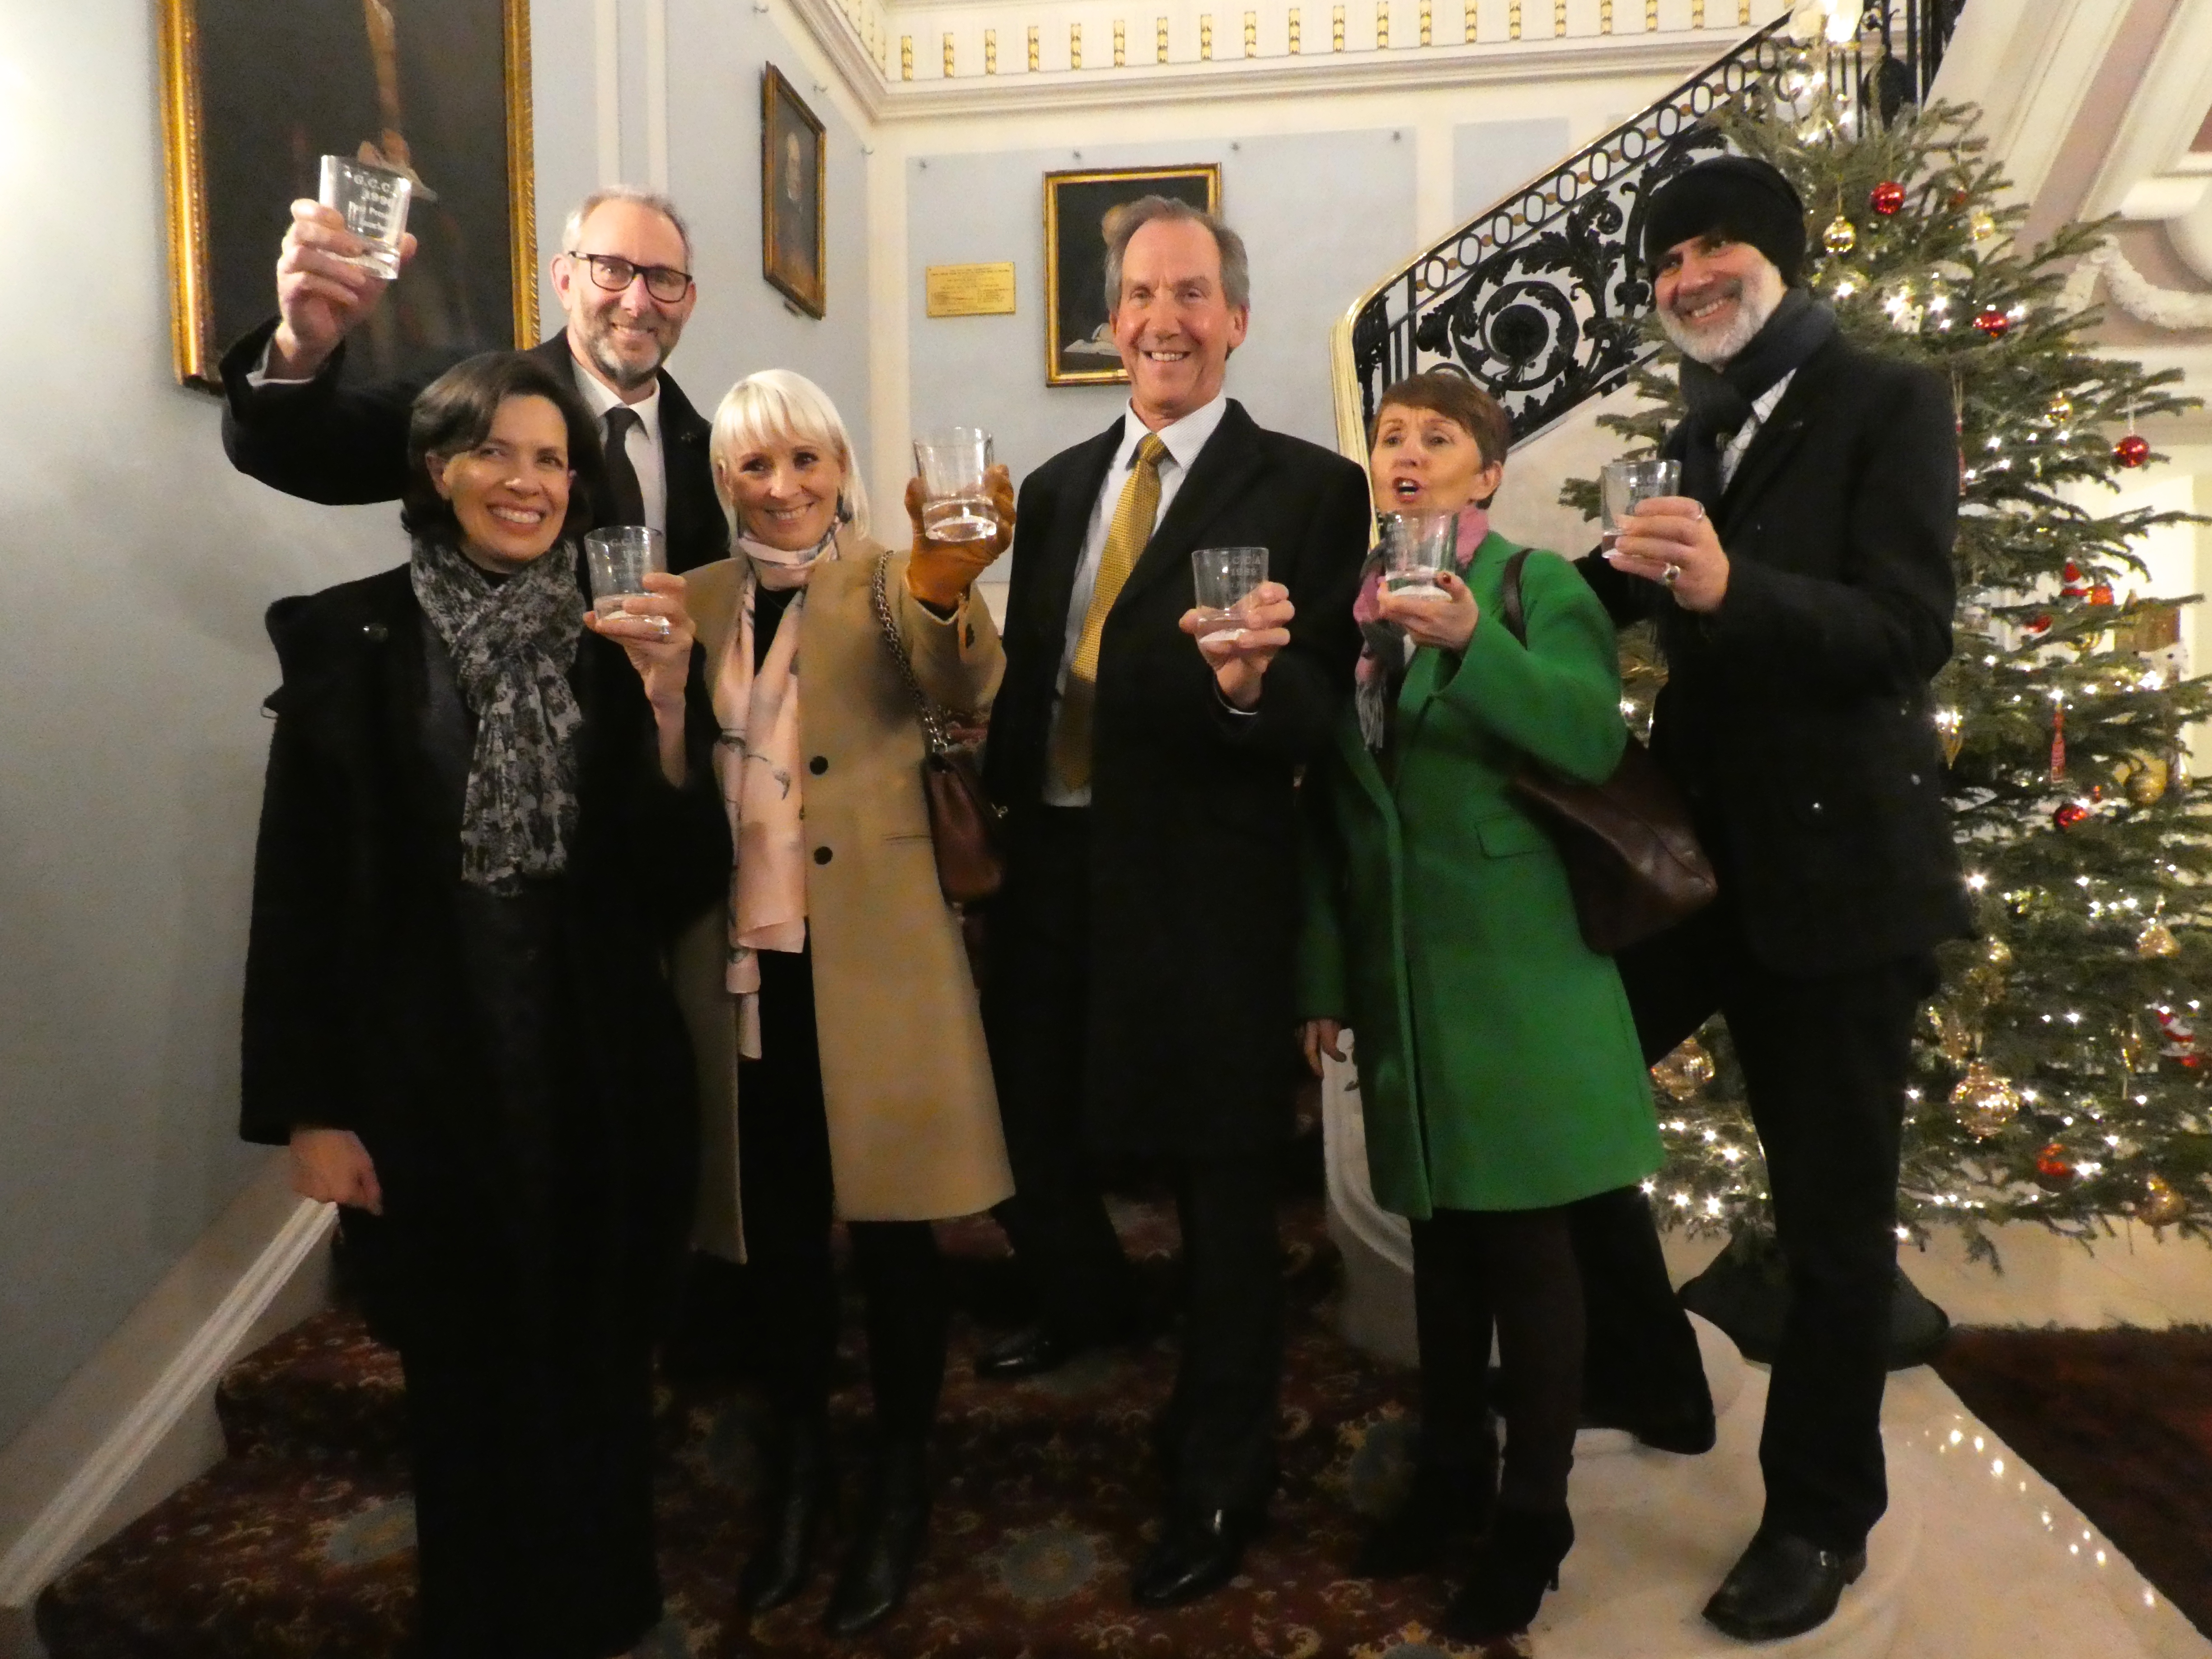 Above: A toast to the past, present and future using historic GCCA glasses, lent by former president Terry Anderson, then of Coronet Cards/Anniversary House. (Left-right) Amanda Fergusson (GCA), Ged Mace (The Art File), Karen Wilson (Paper Salad), Tim Porte (formerly of Paperlink), Ceri Stirland (UKG) and David Hicks (Really Good/Soul).